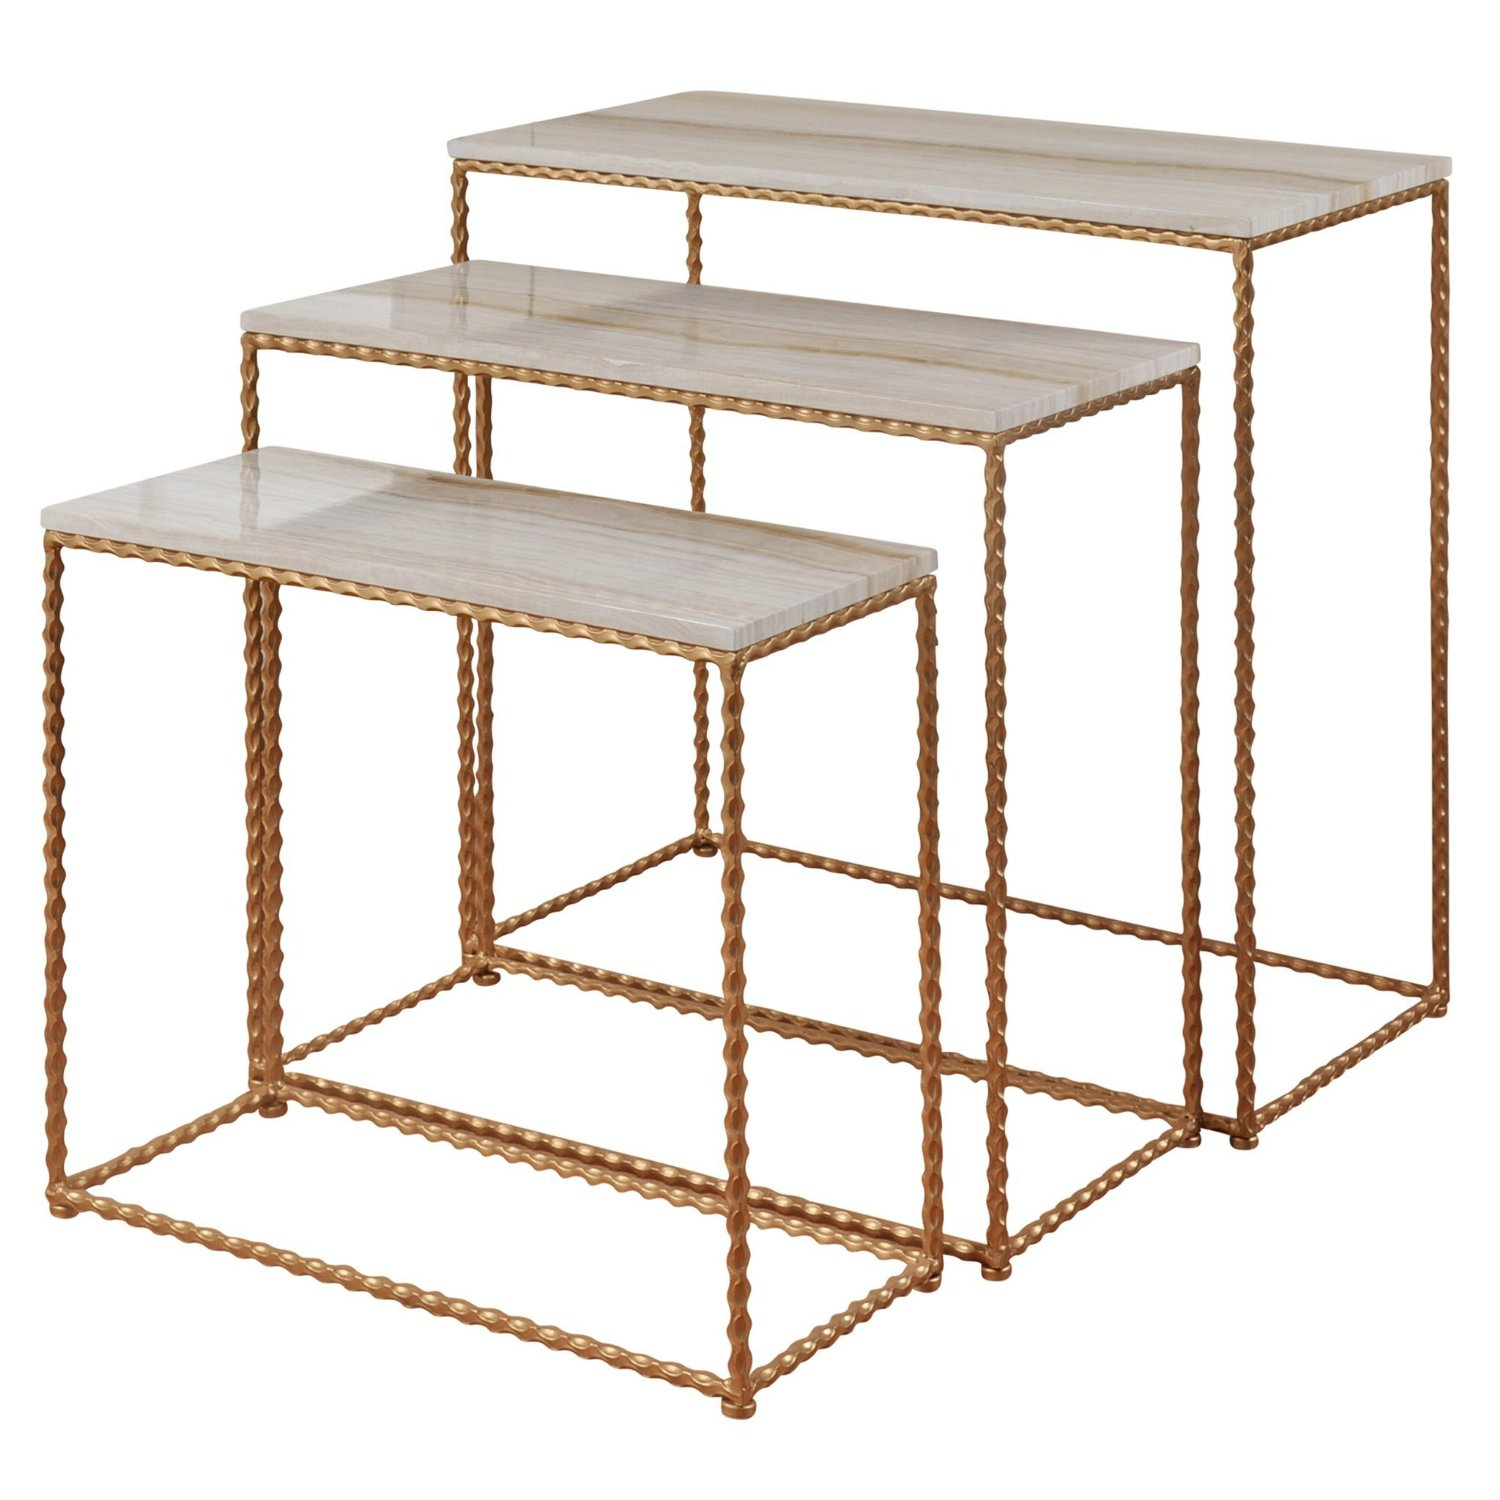 Nested-Set-of-Three-Petite-Console-Tables_78682A.jpg